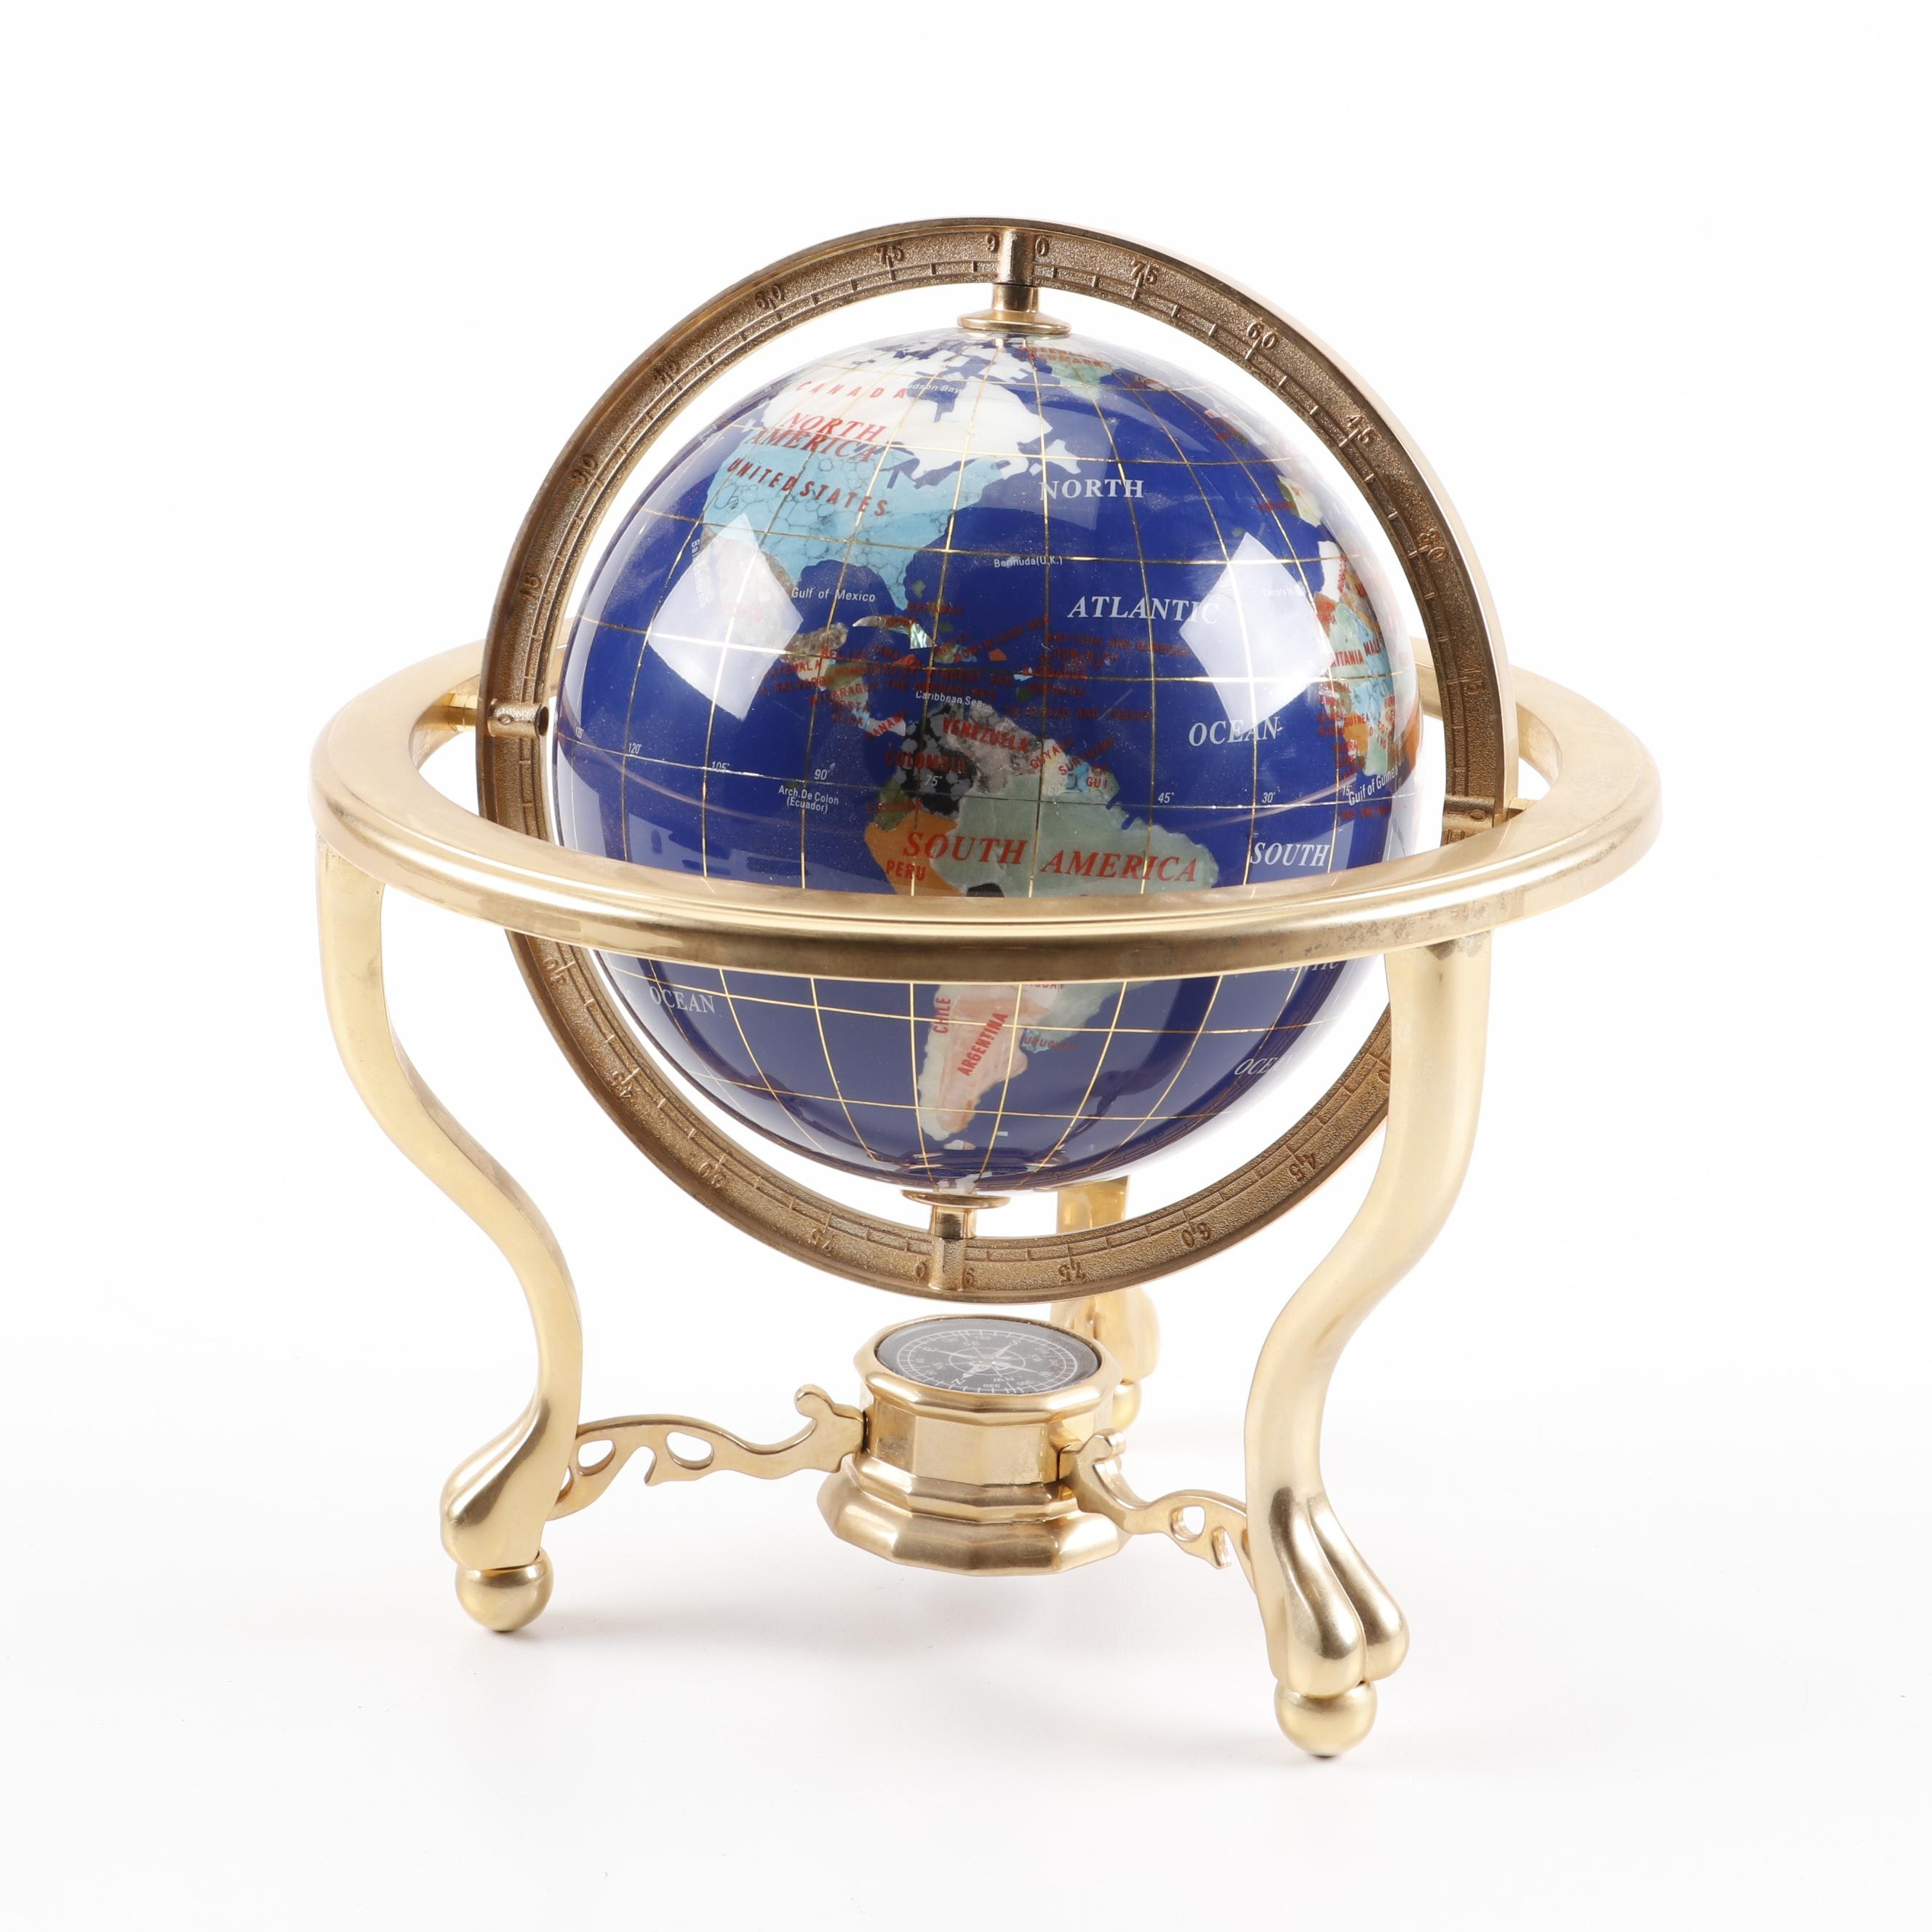 Mixed Mineral and Stone Desk Globe in Brushed Metal Base with Compass